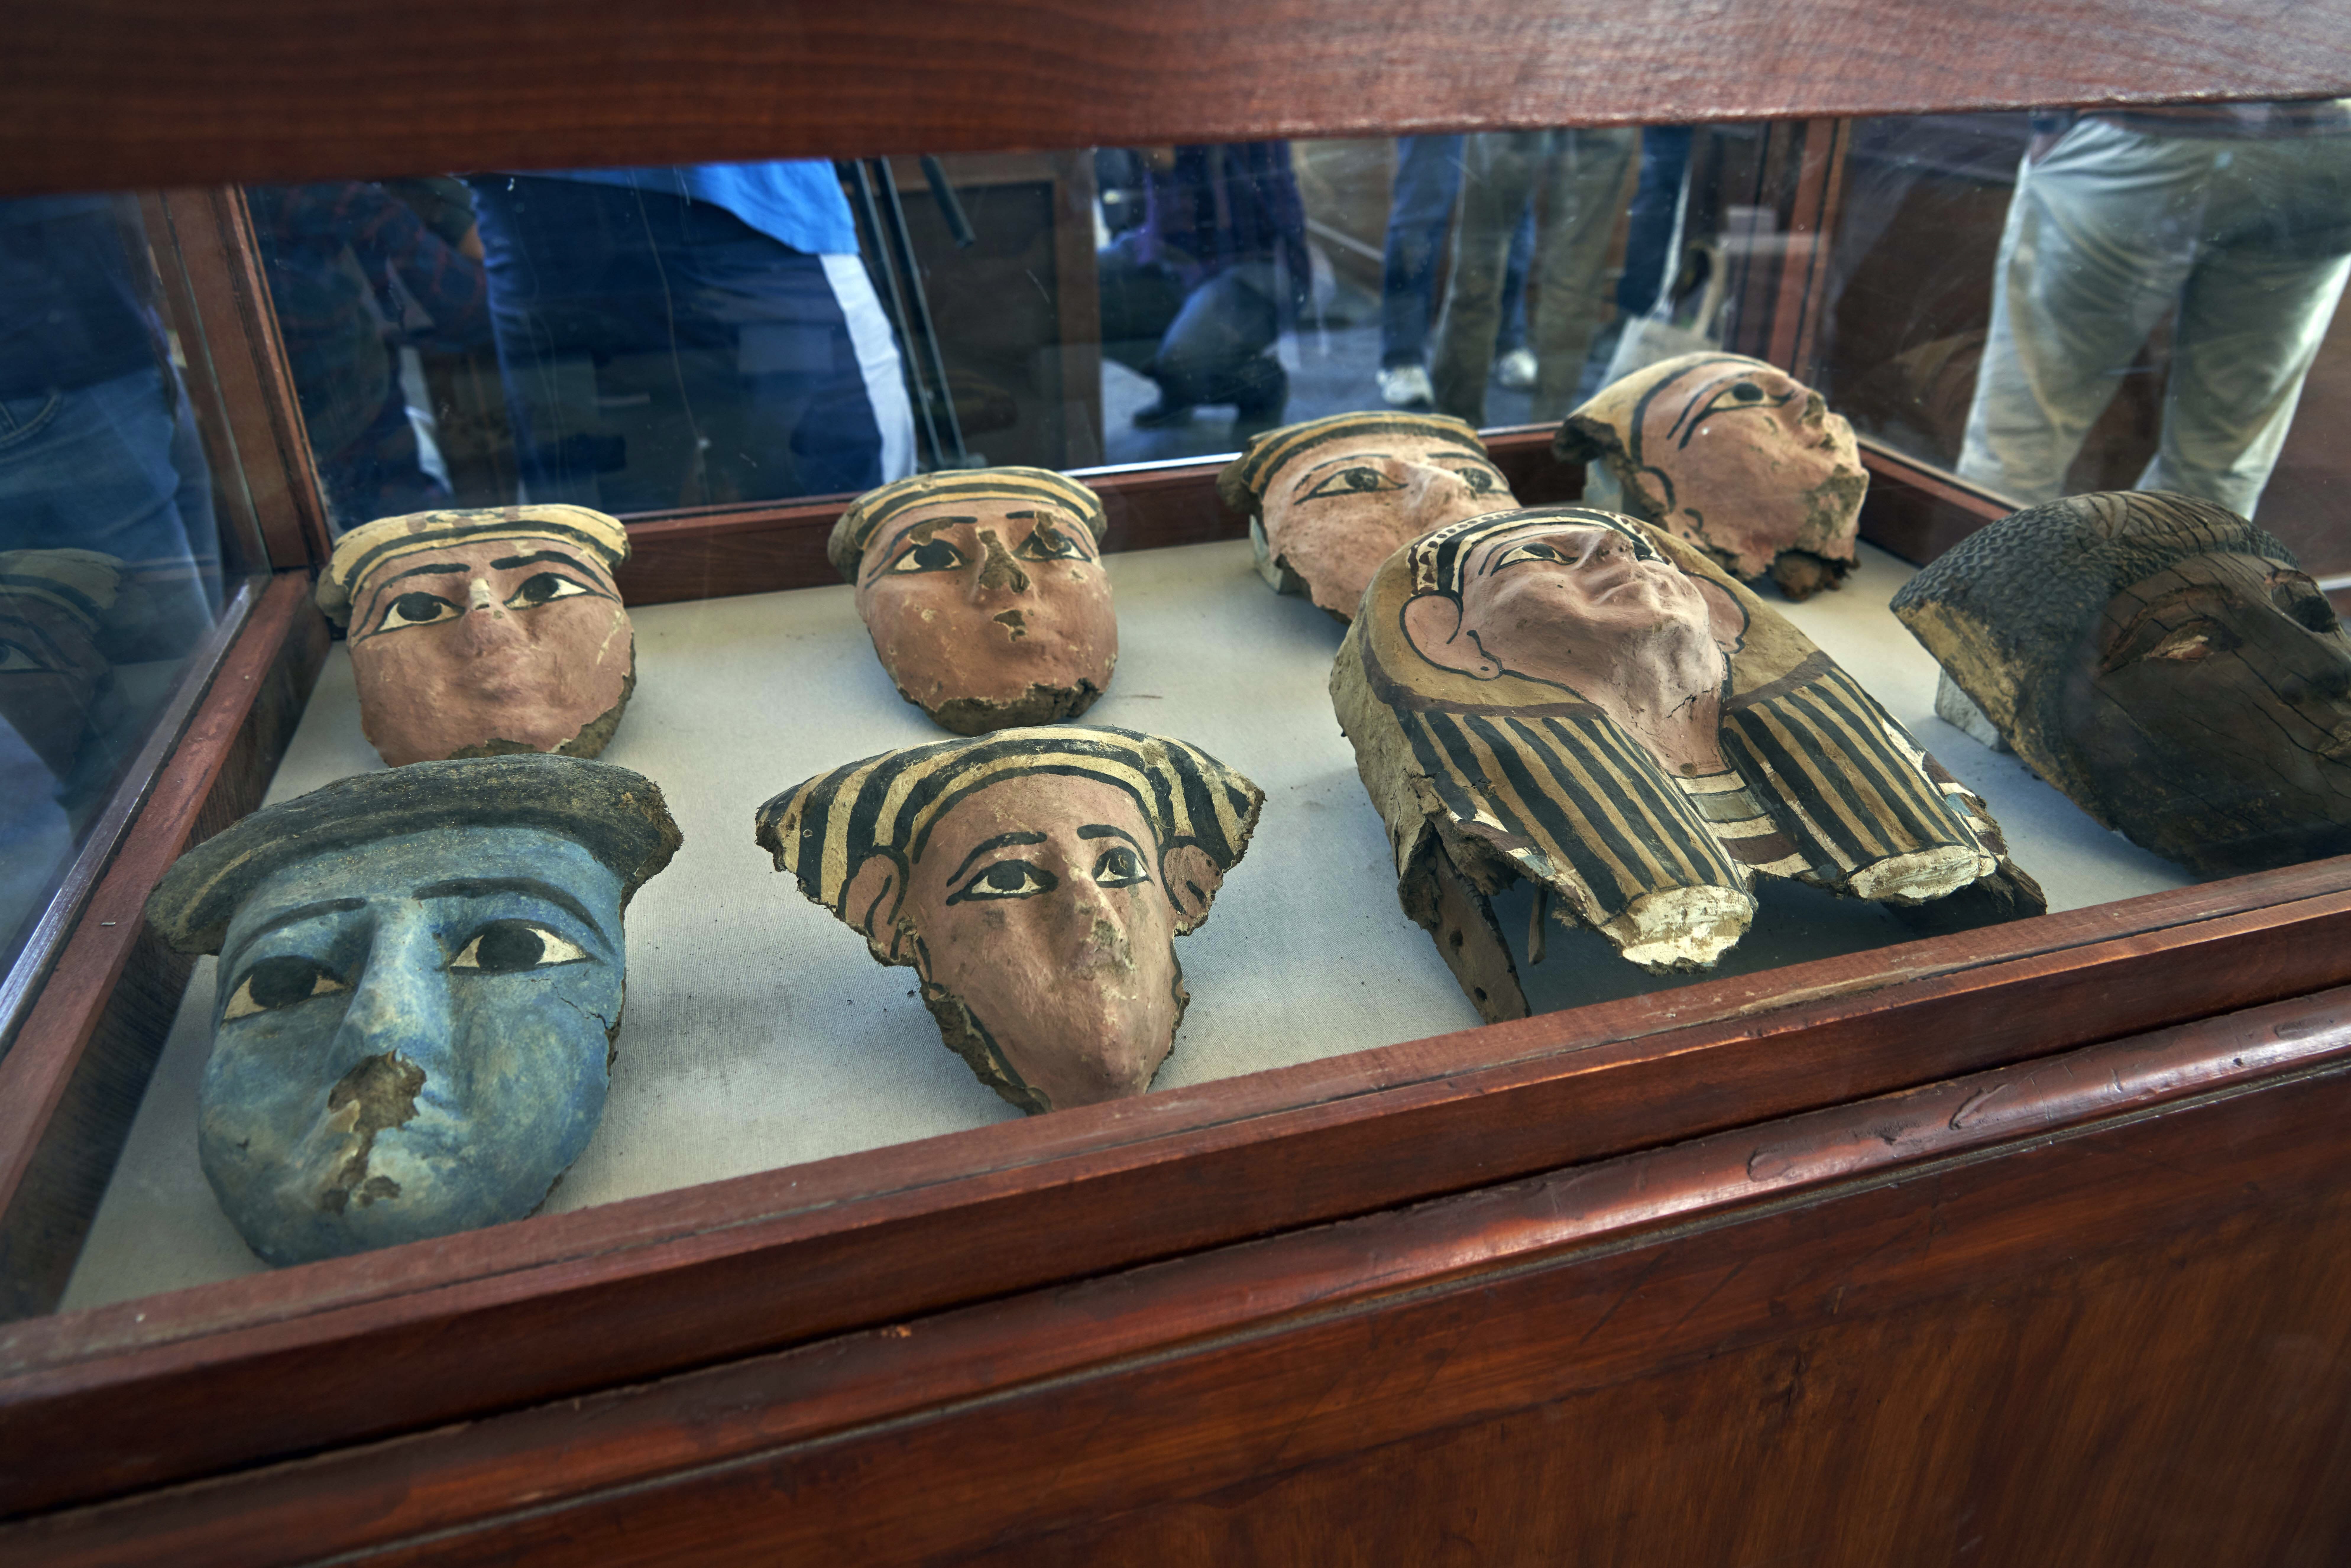 Wooden and clay mummies masks are displayed in Saqqara, south Giza, Egypt. Saturday, Nov. 23, 2019. Egypt's Ministry of Antiquities revealed details on recently discovered animal mummies, saying they include two lion cubs as well as several crocodiles, birds and cats. The new discovery was displayed at a makeshift exhibition at the famed Step Pyramid of Djoser in Saqqara, south of Cairo, near the mummies and other artifacts were found in a vast necropolis. (AP Photo/Hamada Elrasam)